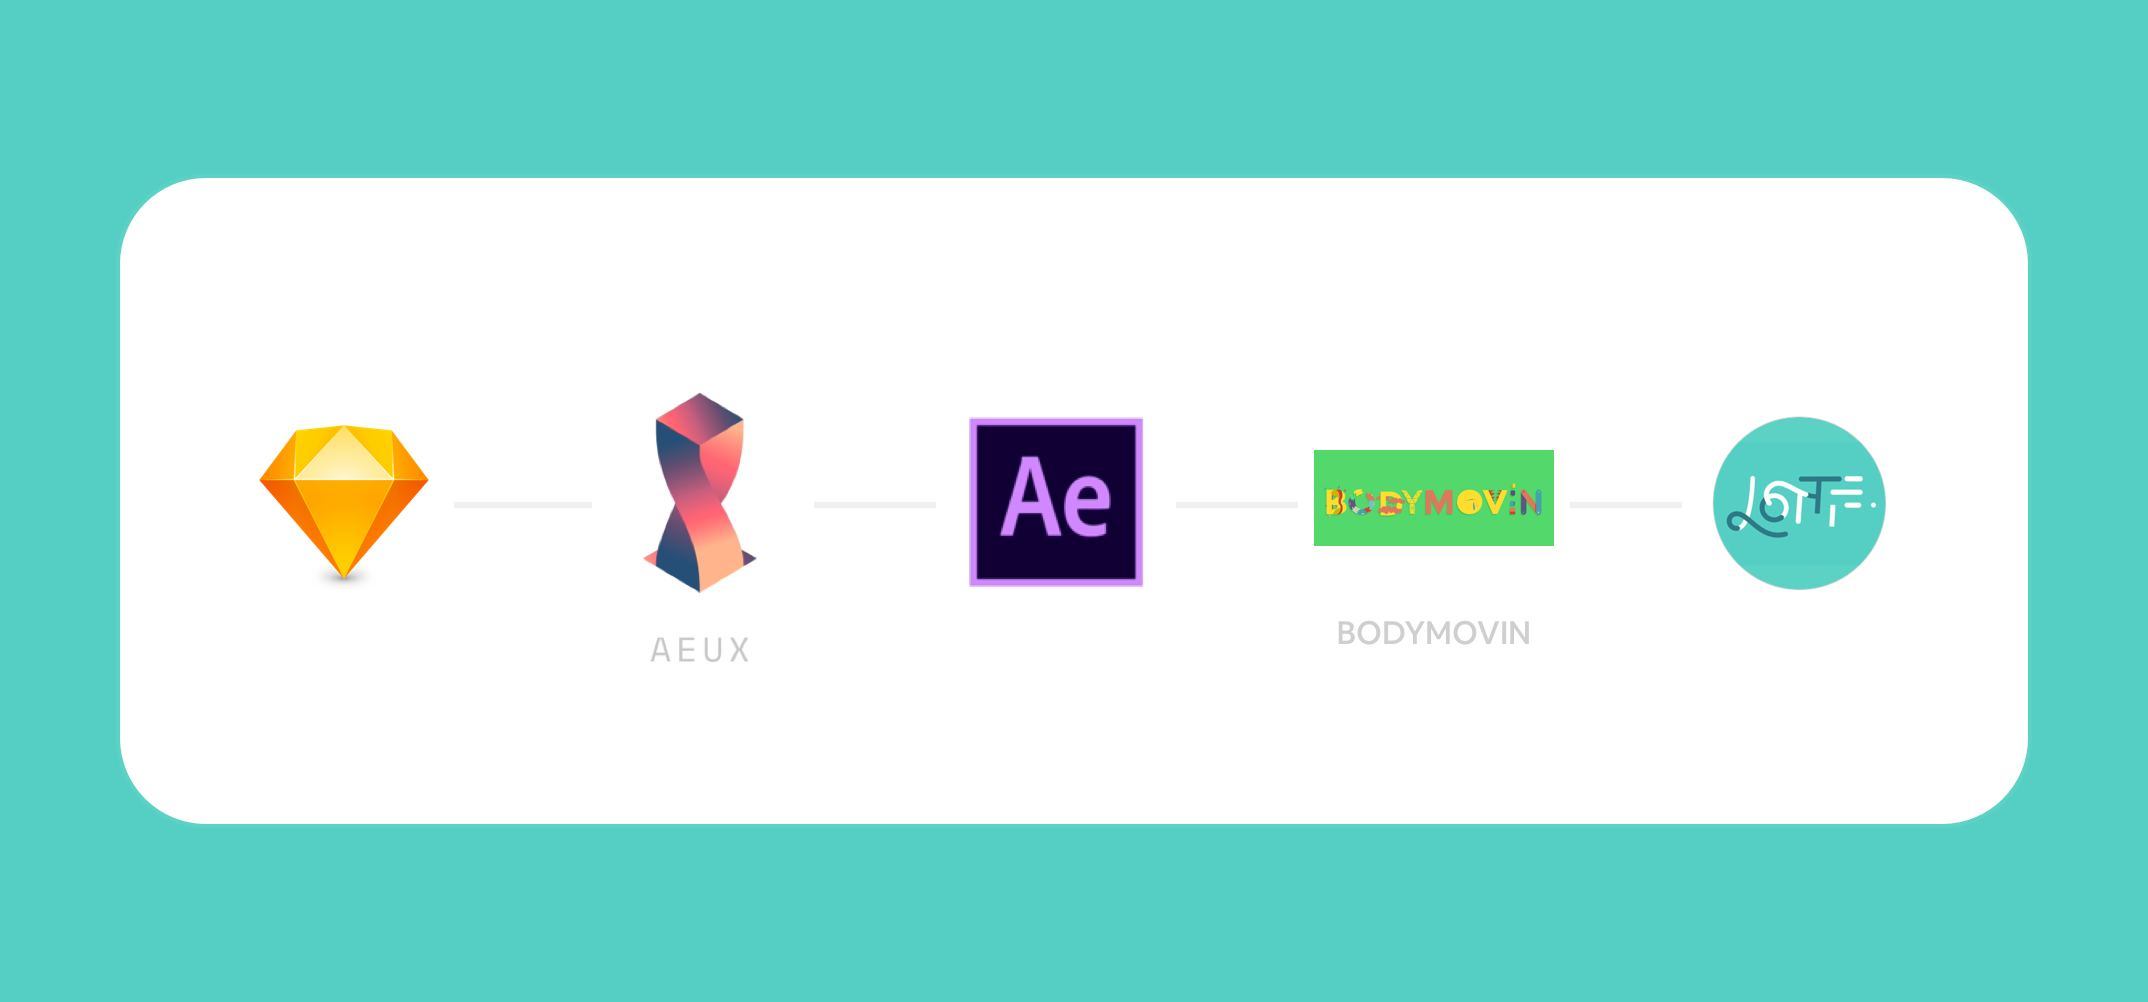 Create native Lottie animations with Sketch and AE, the